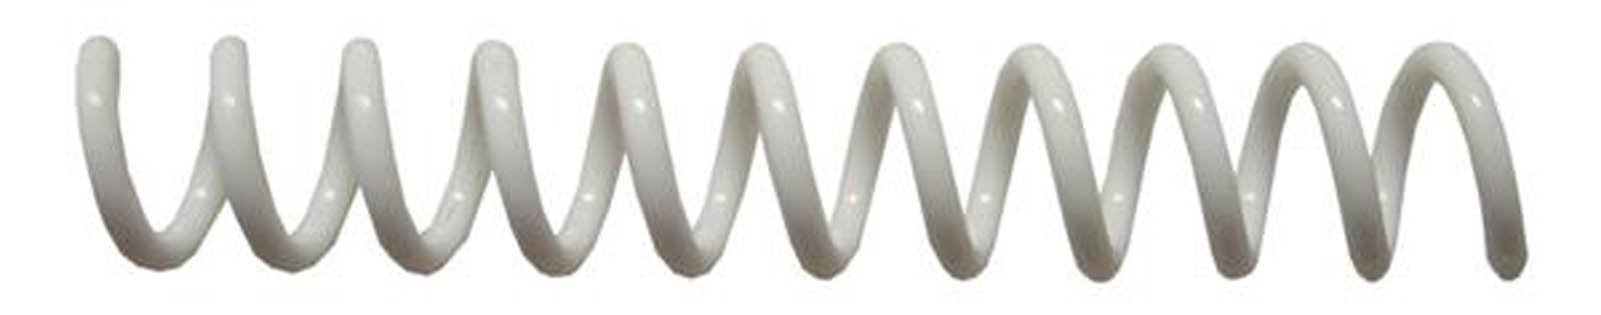 7mm (9/32) White Coil Bindings (Qty 100) Color: White, Model: , Office/School Supply Store